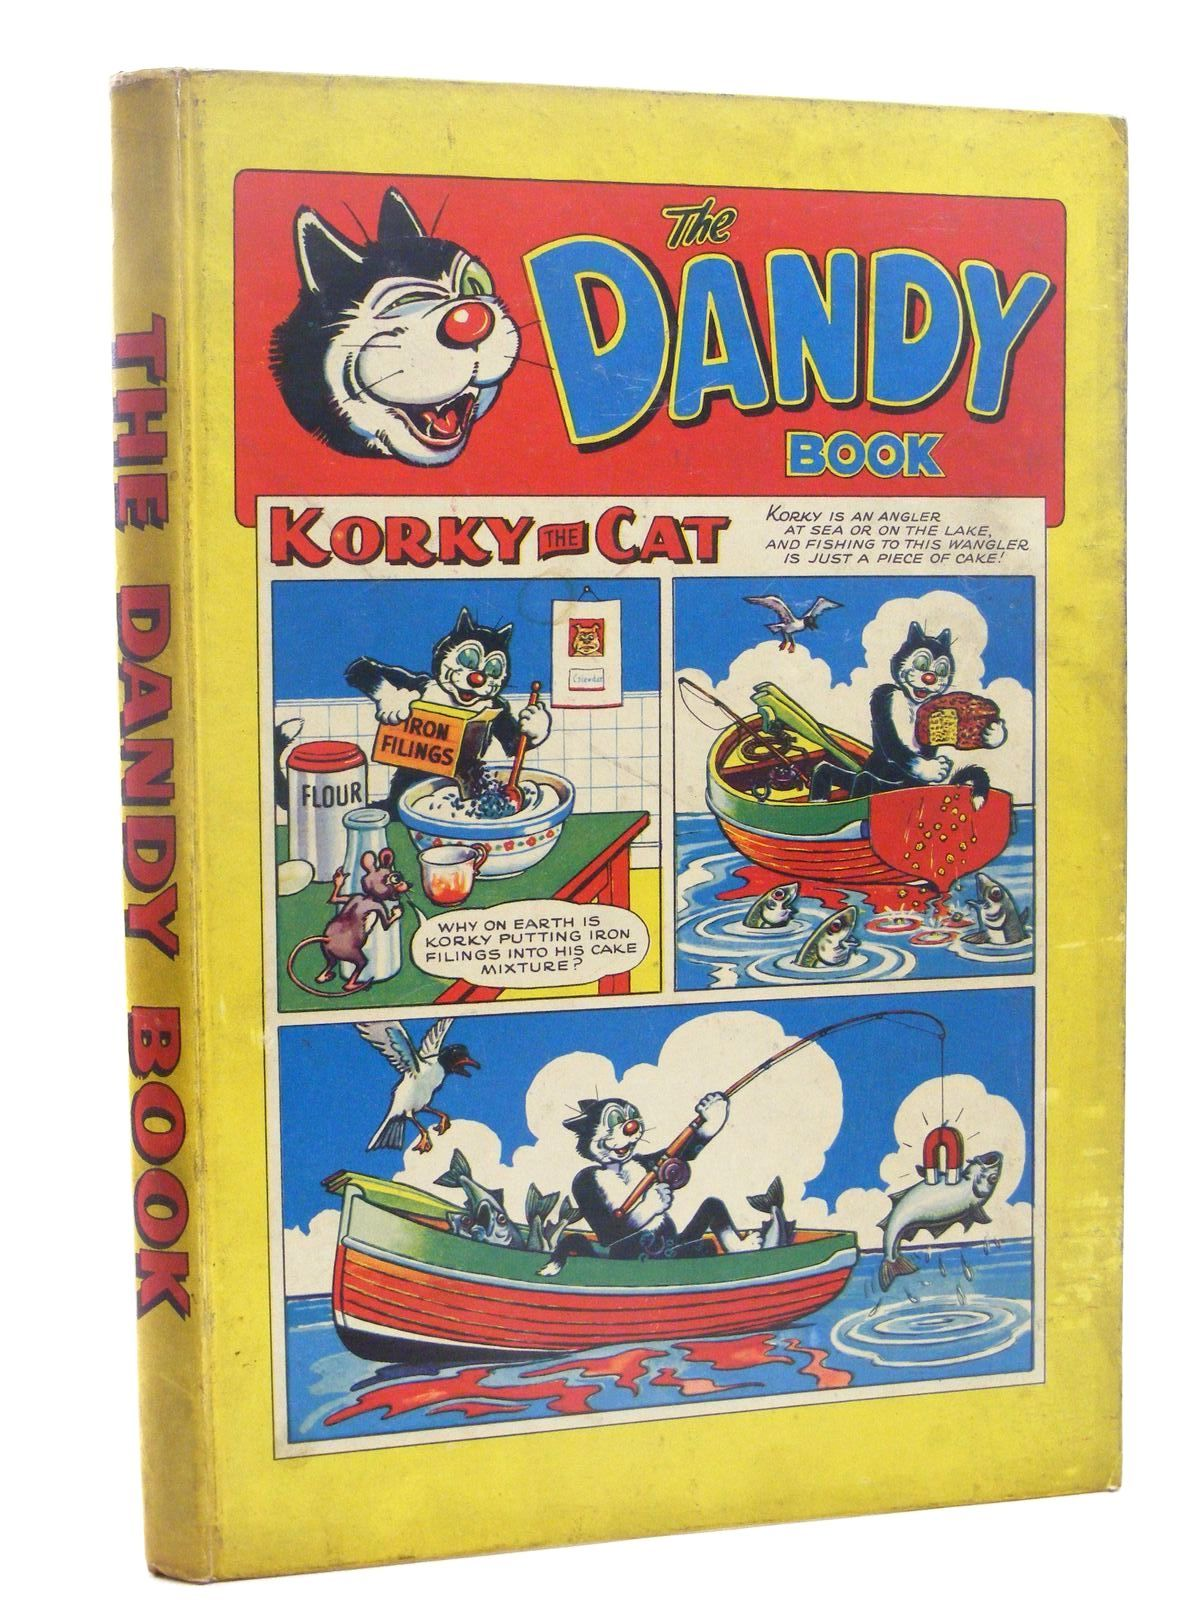 Photo of THE DANDY BOOK 1958 published by D.C. Thomson & Co Ltd. (STOCK CODE: 1610348)  for sale by Stella & Rose's Books